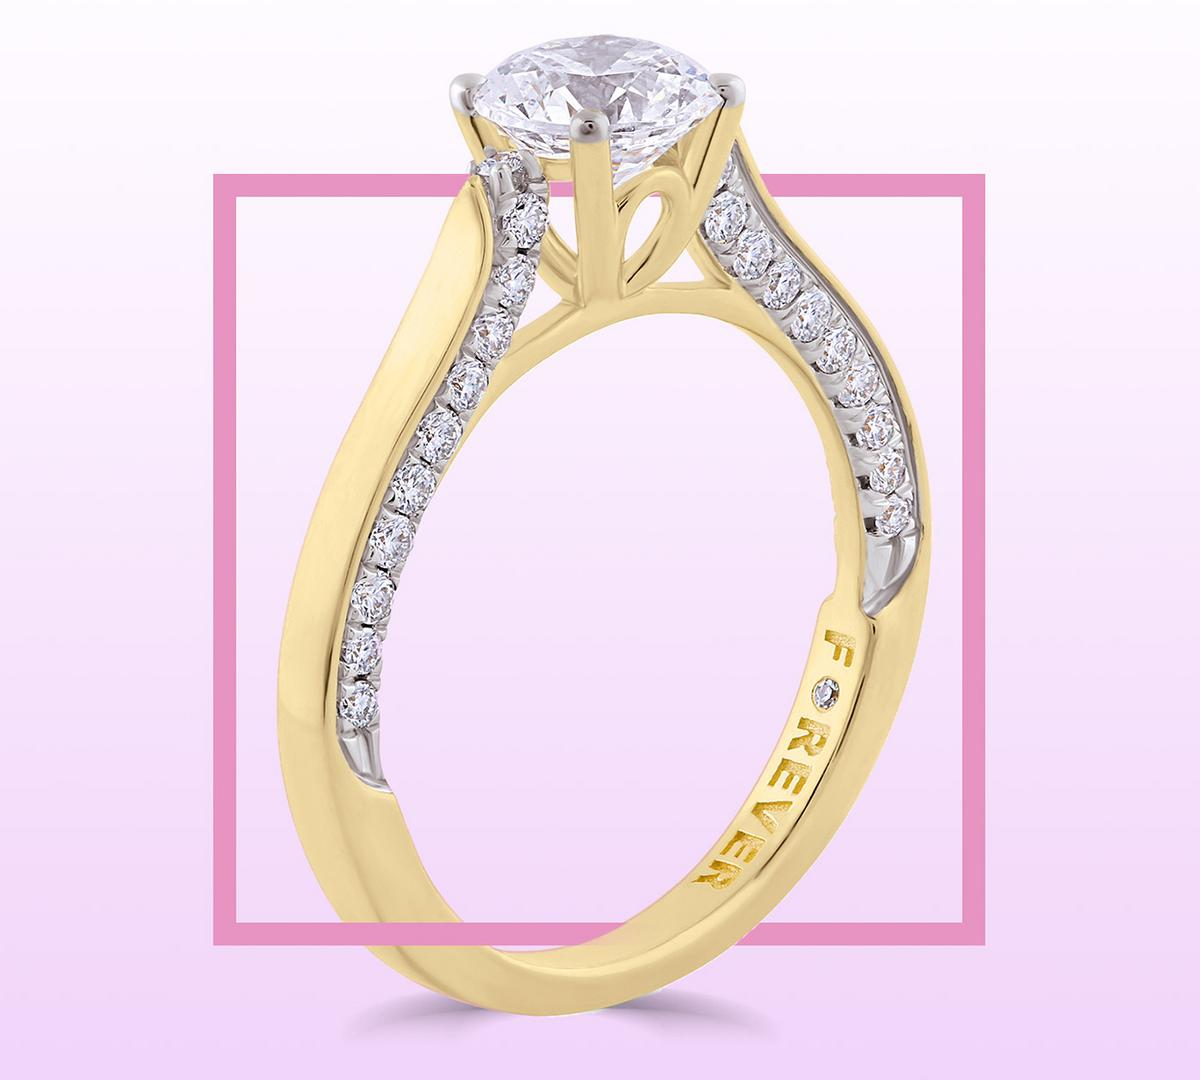 18ct Yellow Gold 1ct Forever Diamond Solitaire Engagement Ring